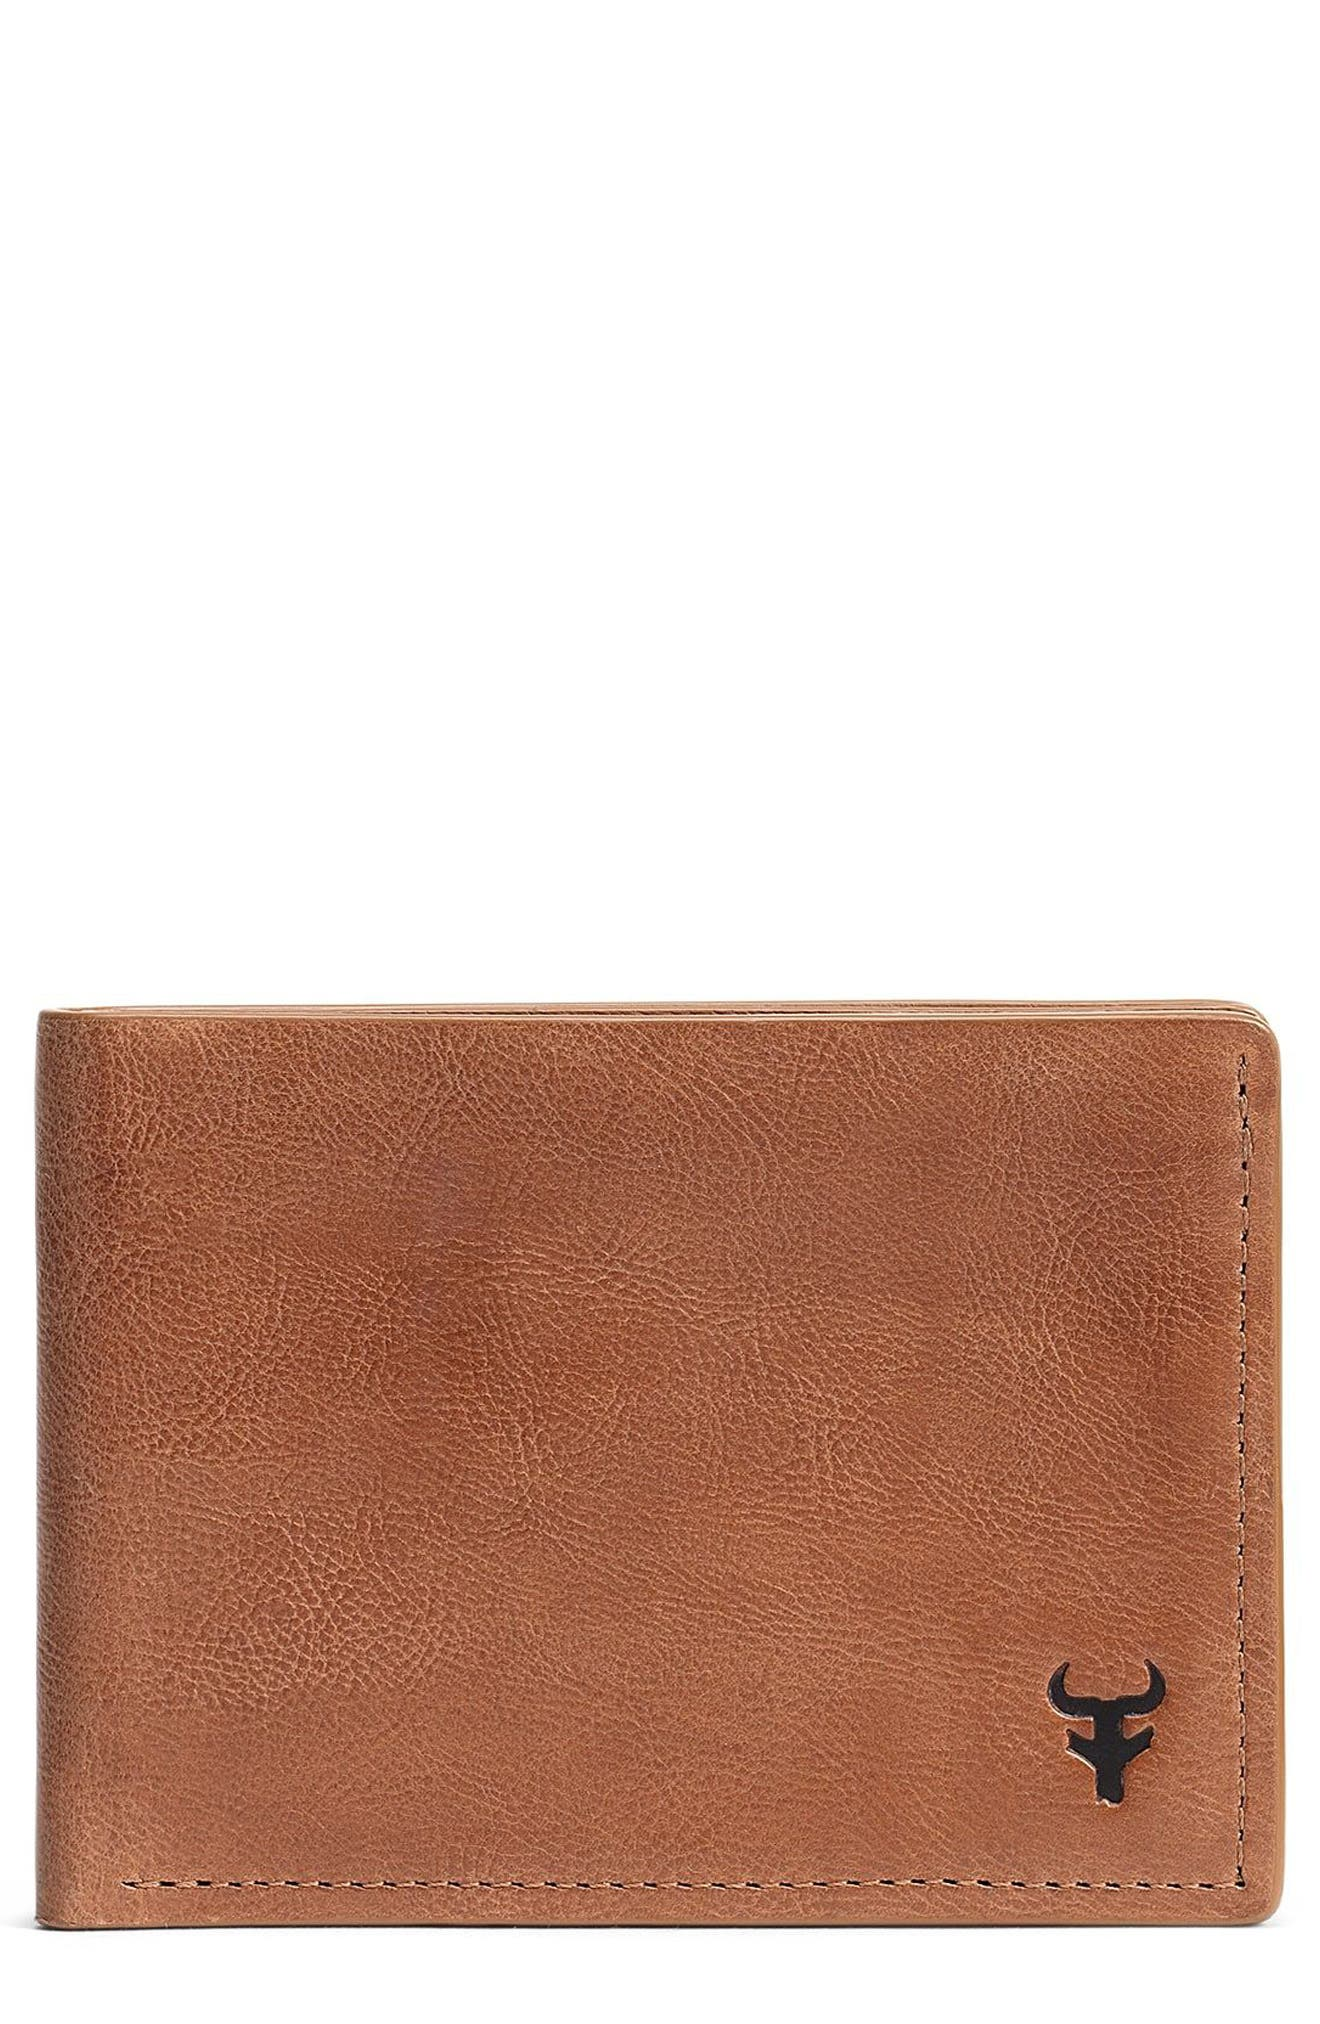 Trask Canyon Super Slim Leather Wallet